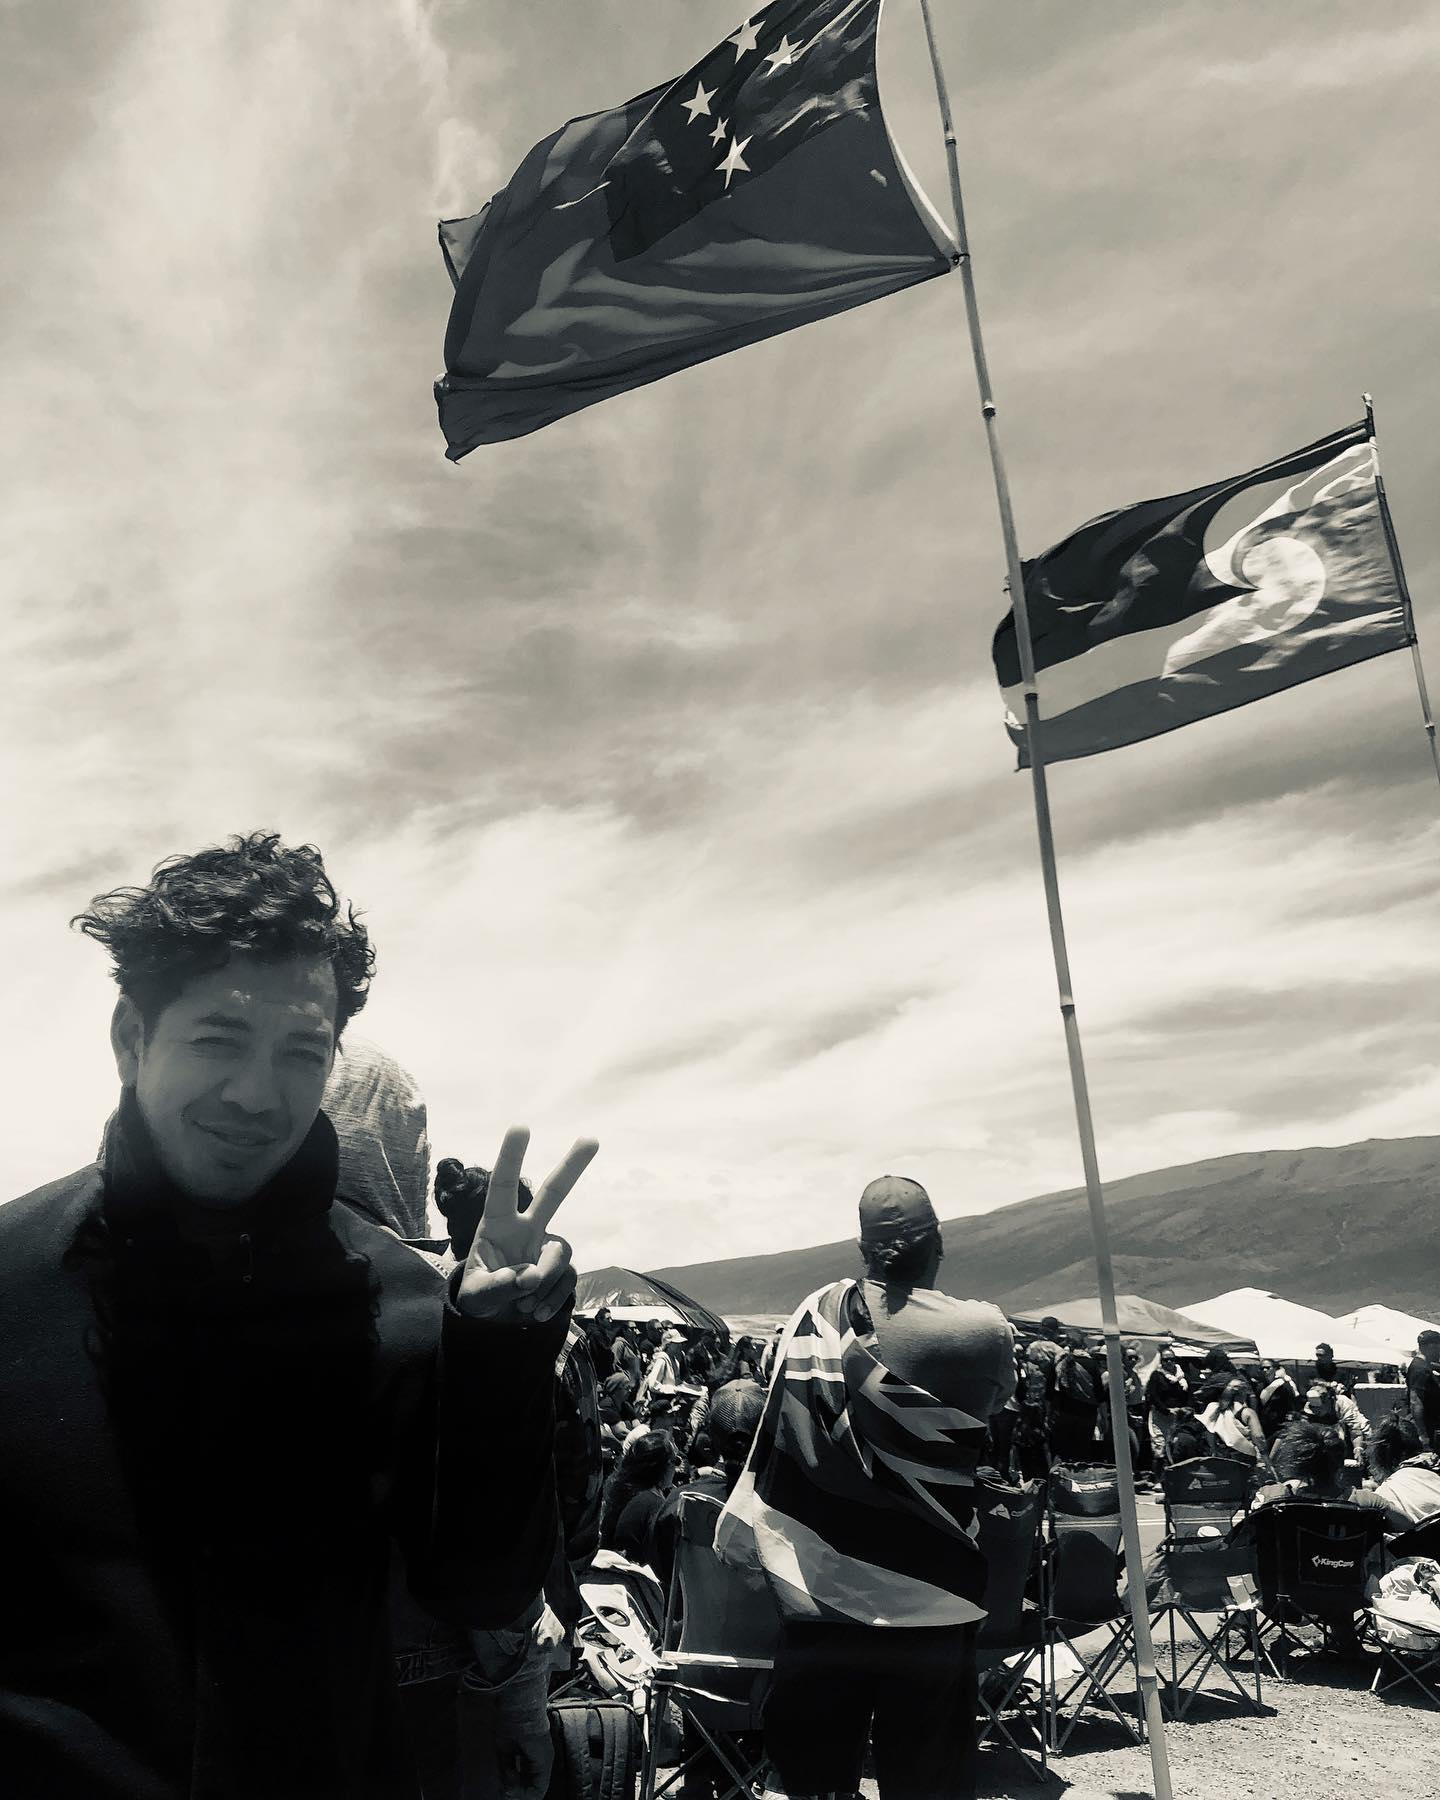 HAPA's inaugural Kuleana Academy Fellow, Sonny Ganaden, is one of the lawyers providing pro-bono legal services to the kupuna arrested protecting Mauna Kea on July 17, 2019.